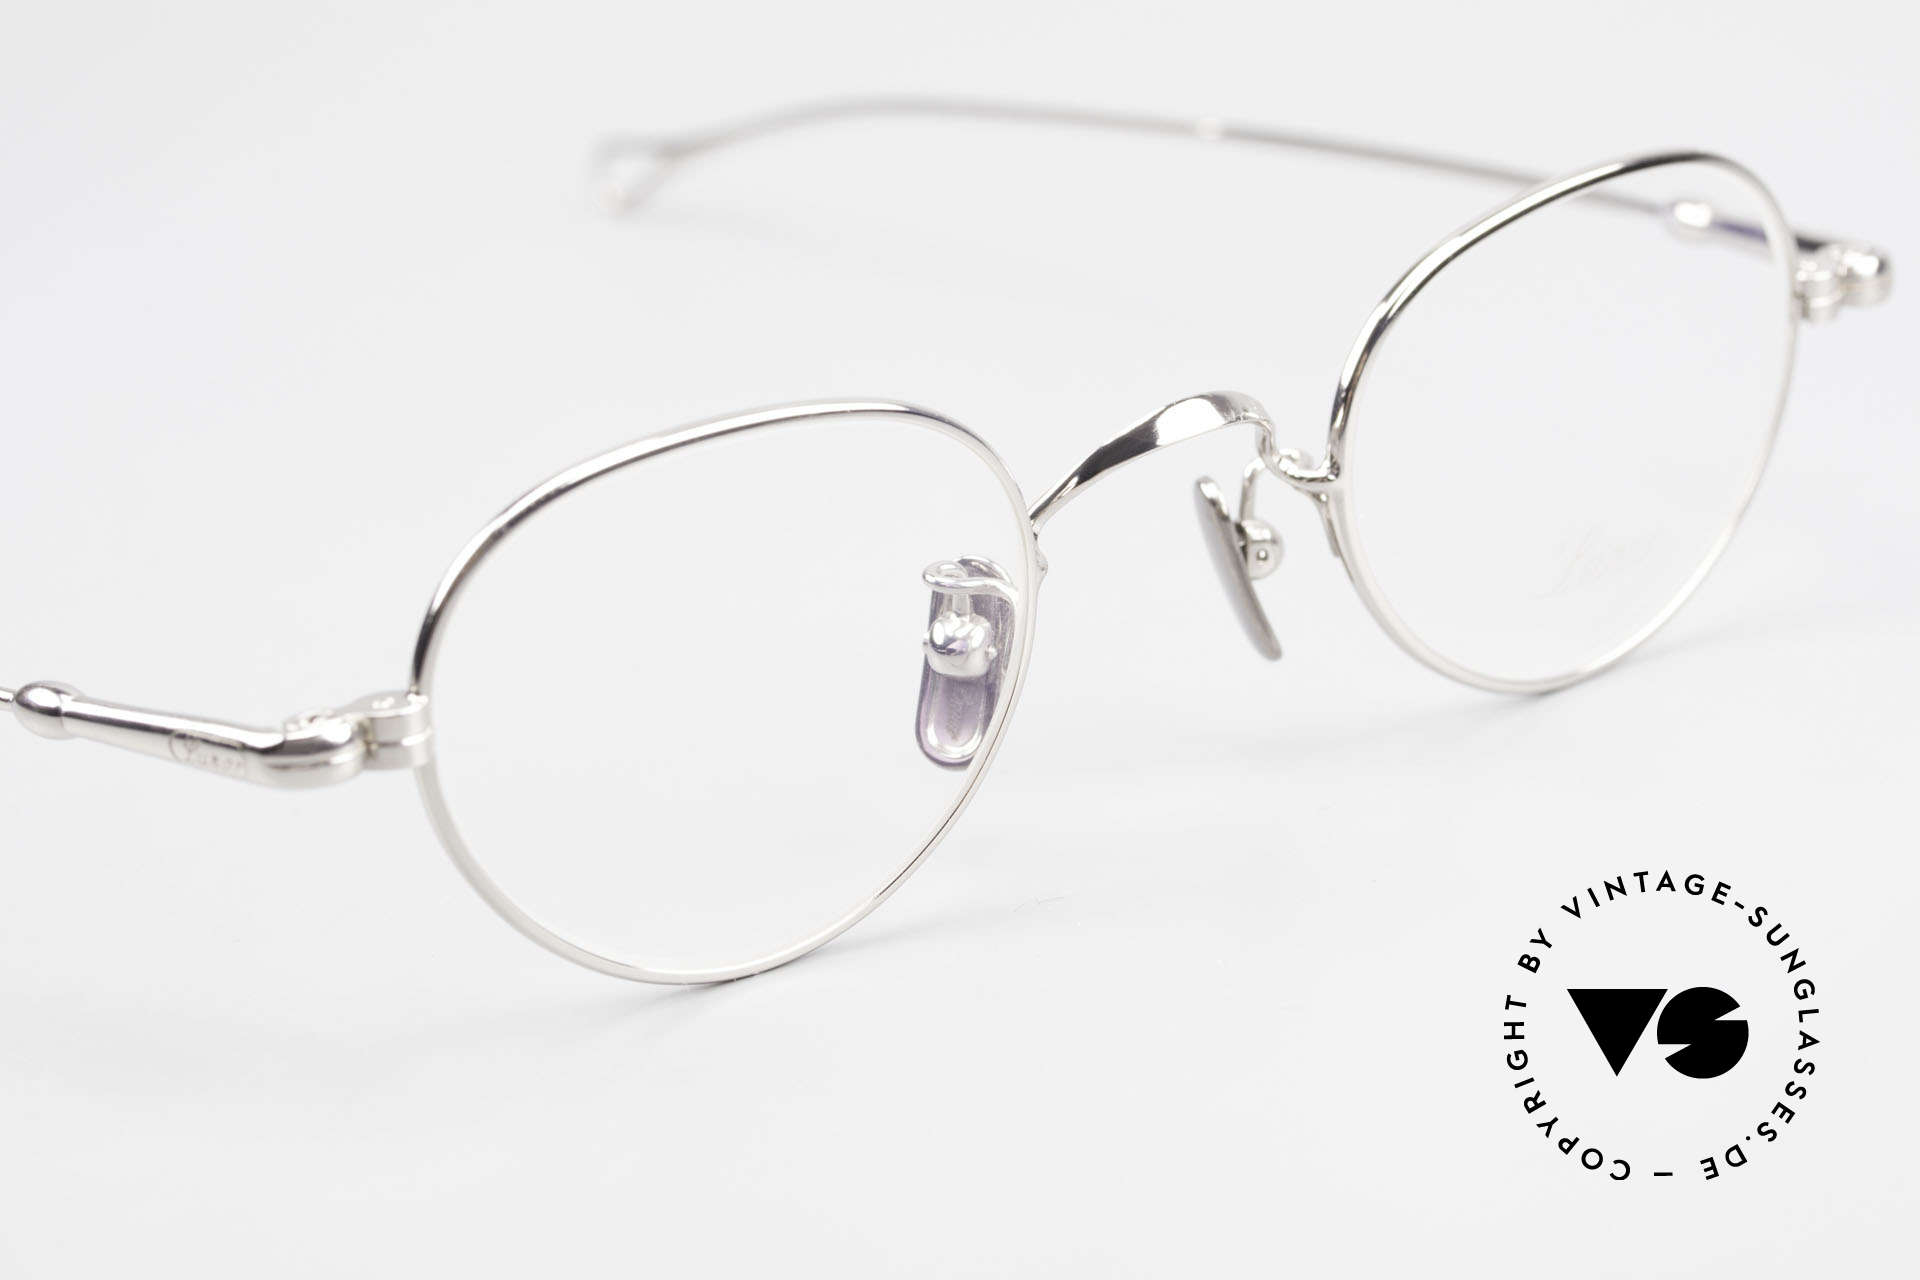 Lunor V 103 Timeless Lunor Eyeglass-Frame, thus, we decided to take it into our vintage collection, Made for Men and Women